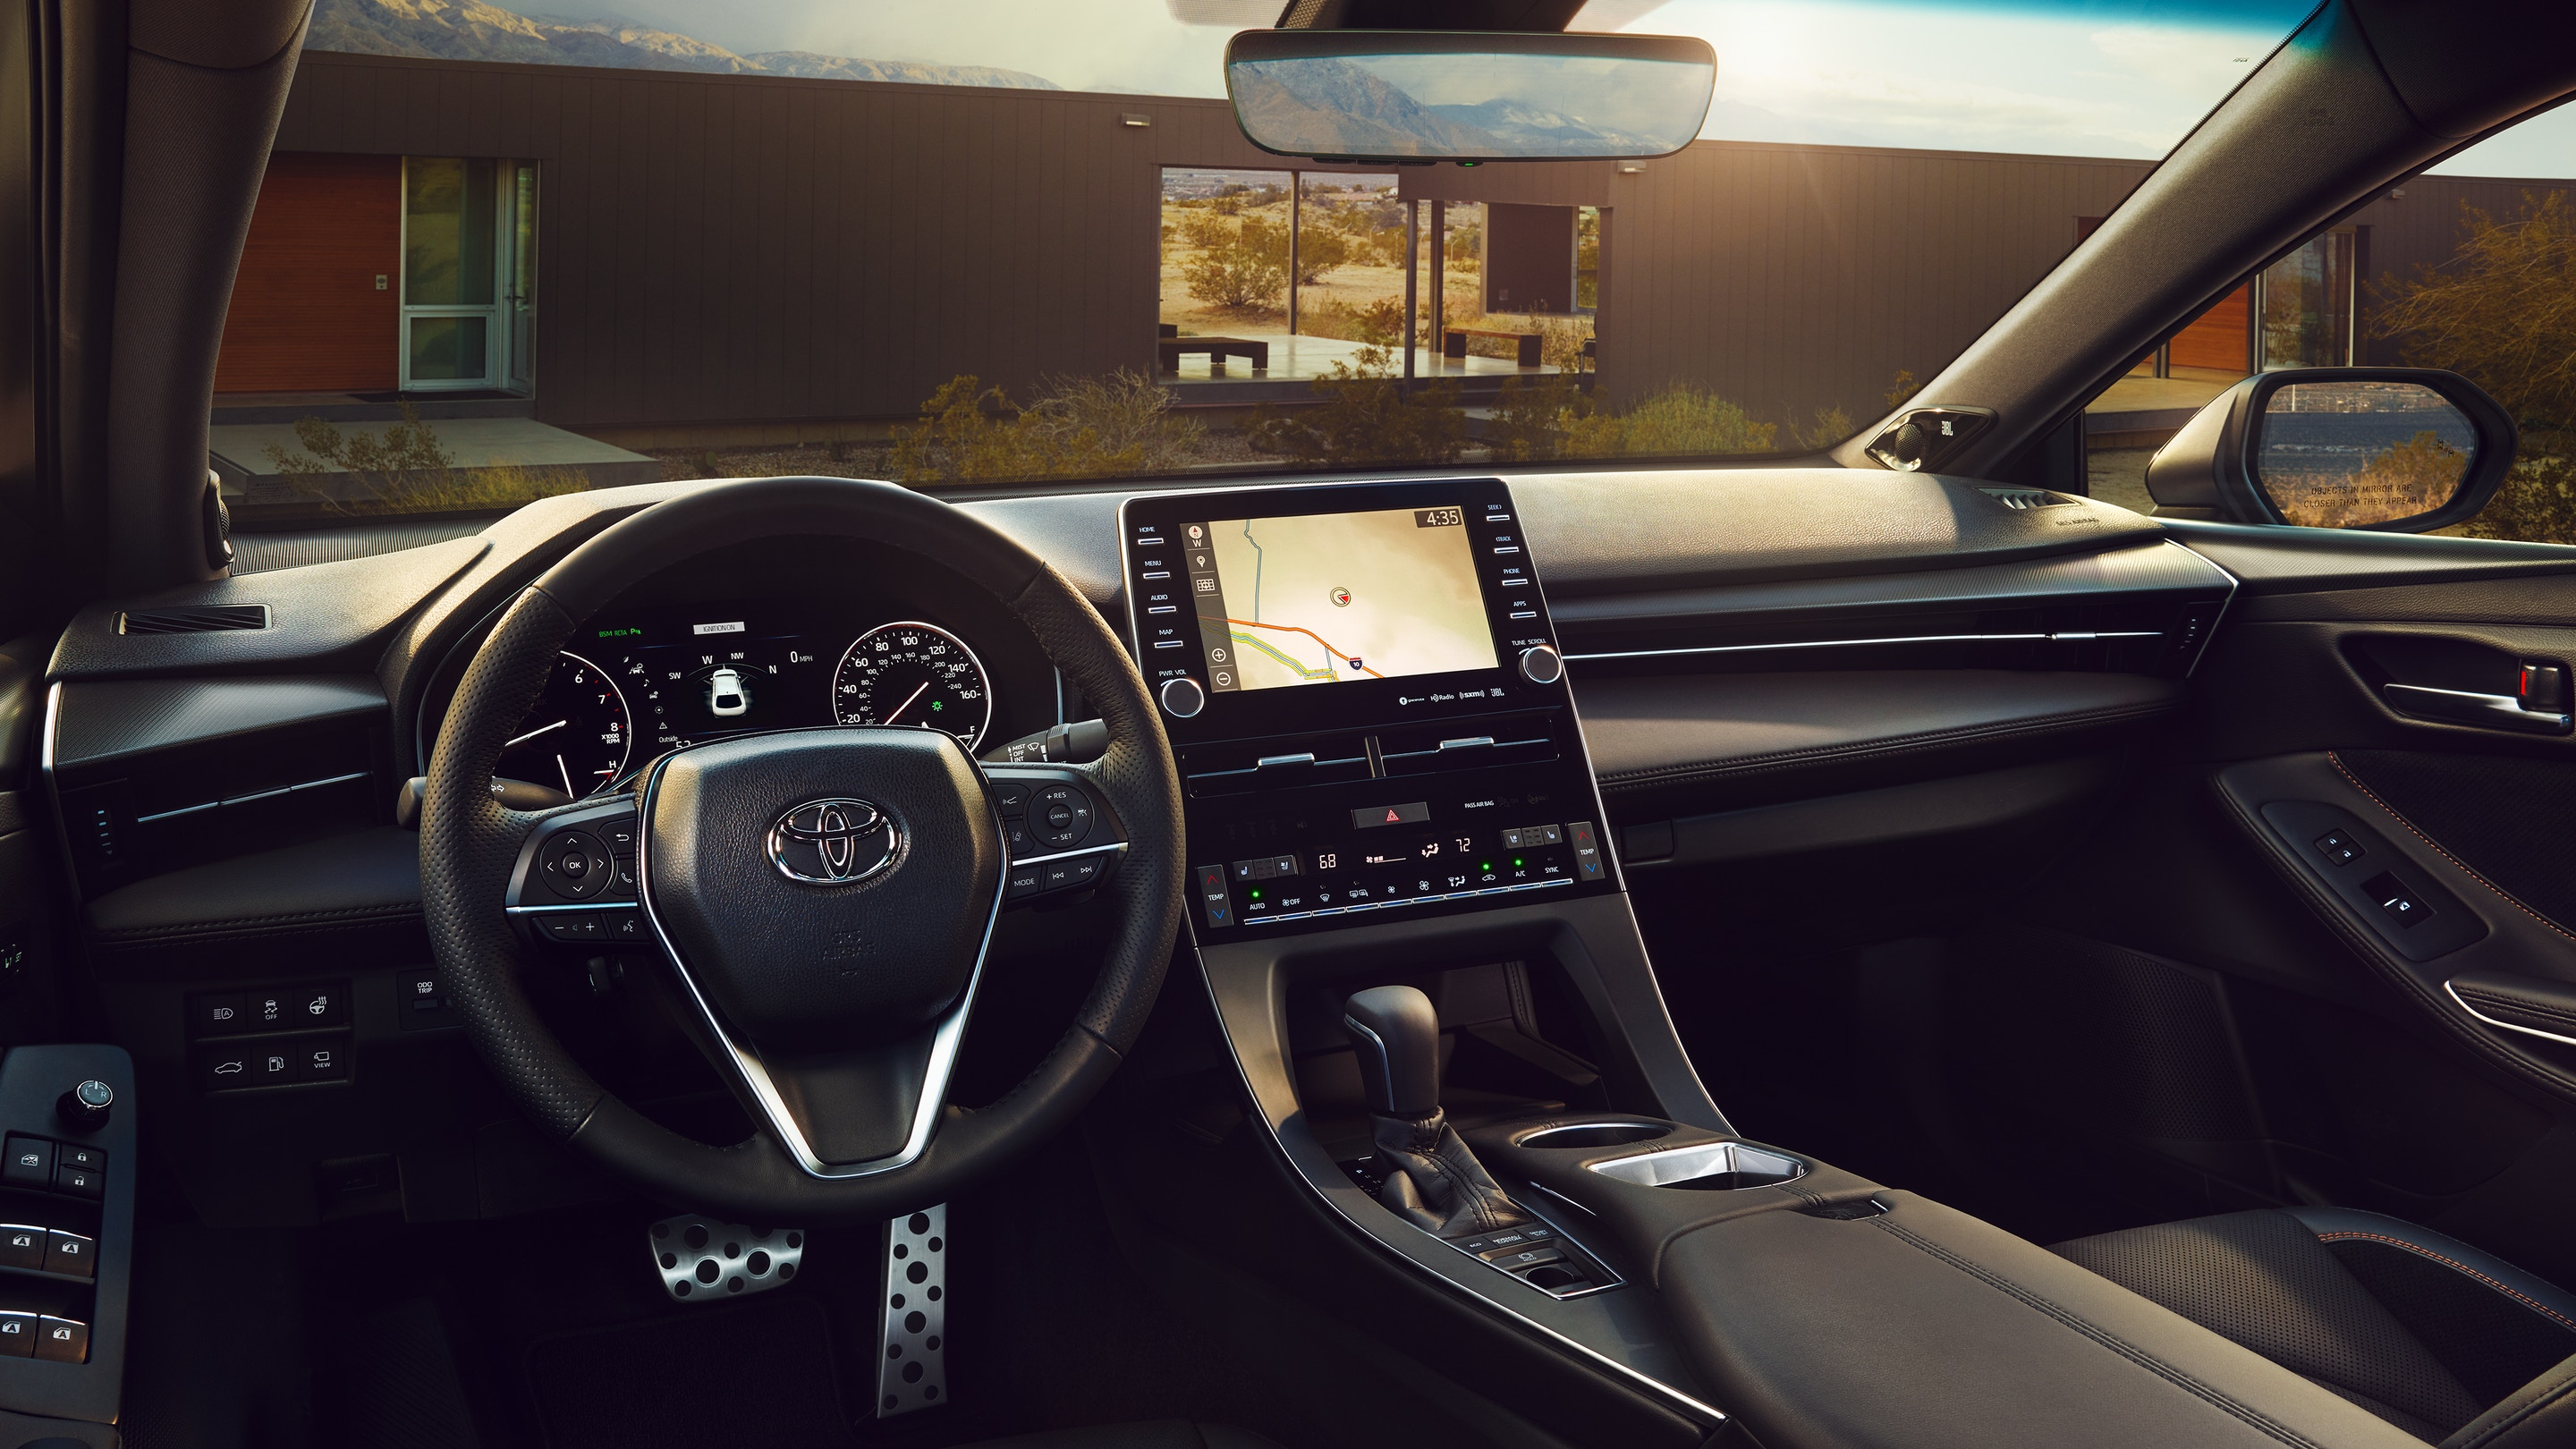 Touchscreen in the 2020 Avalon